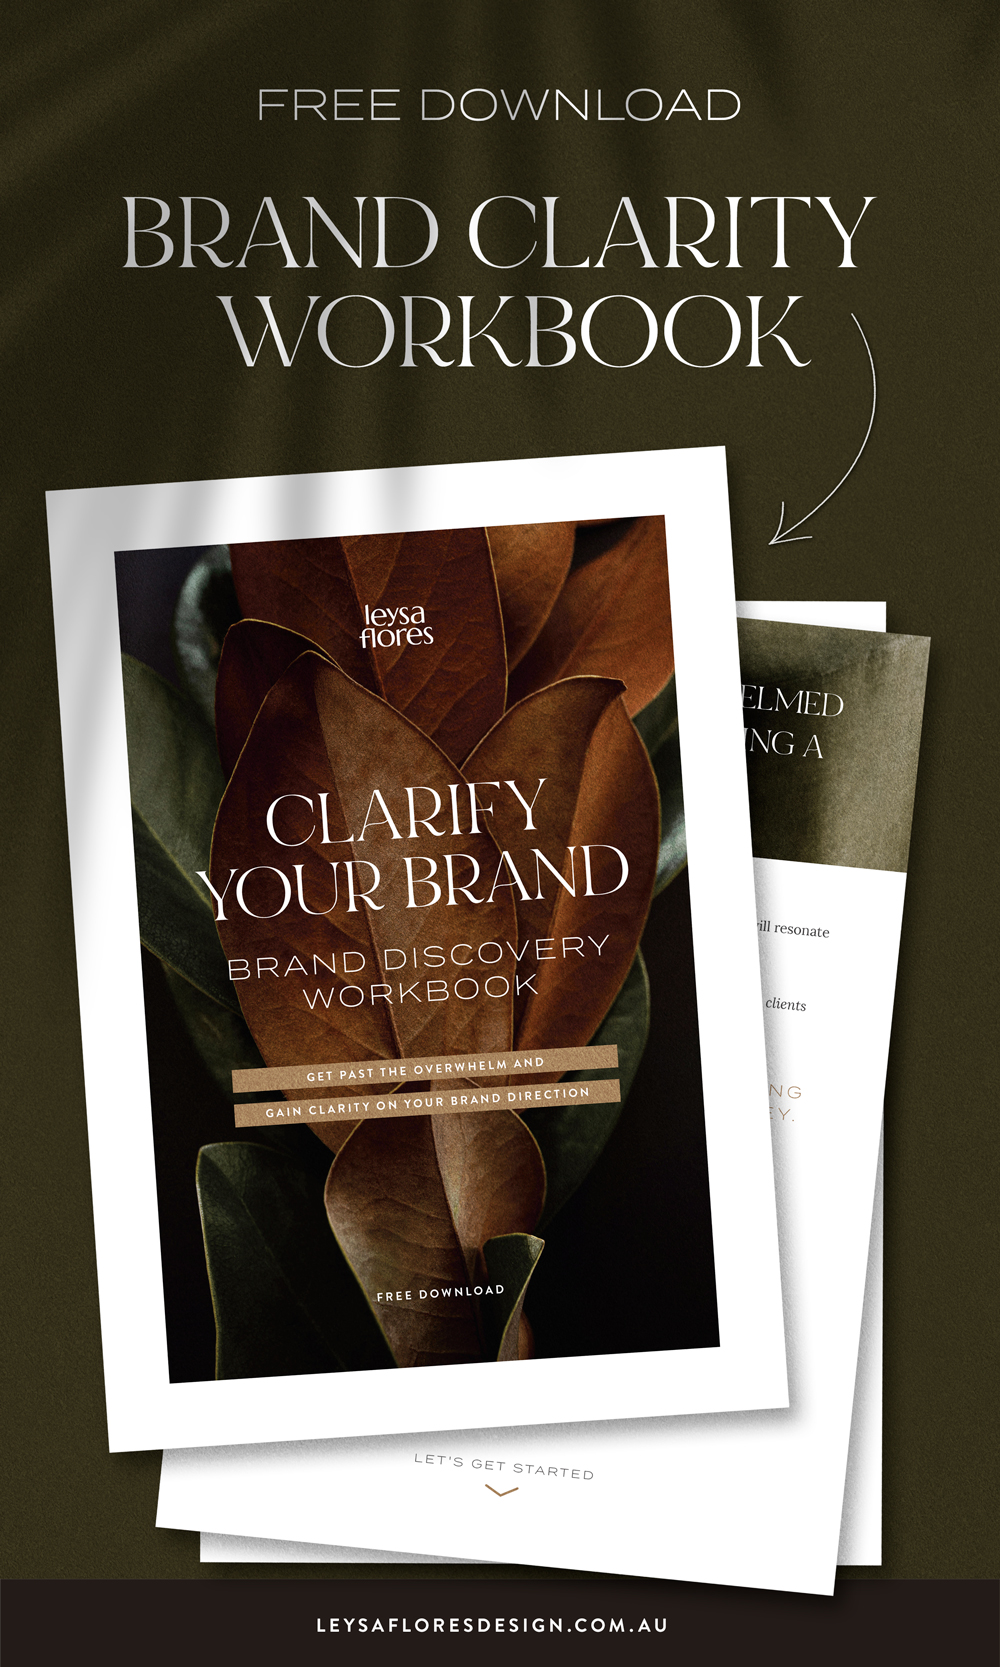 Clarify Your Brand discovery workbook | free download via Leysa Flores Design